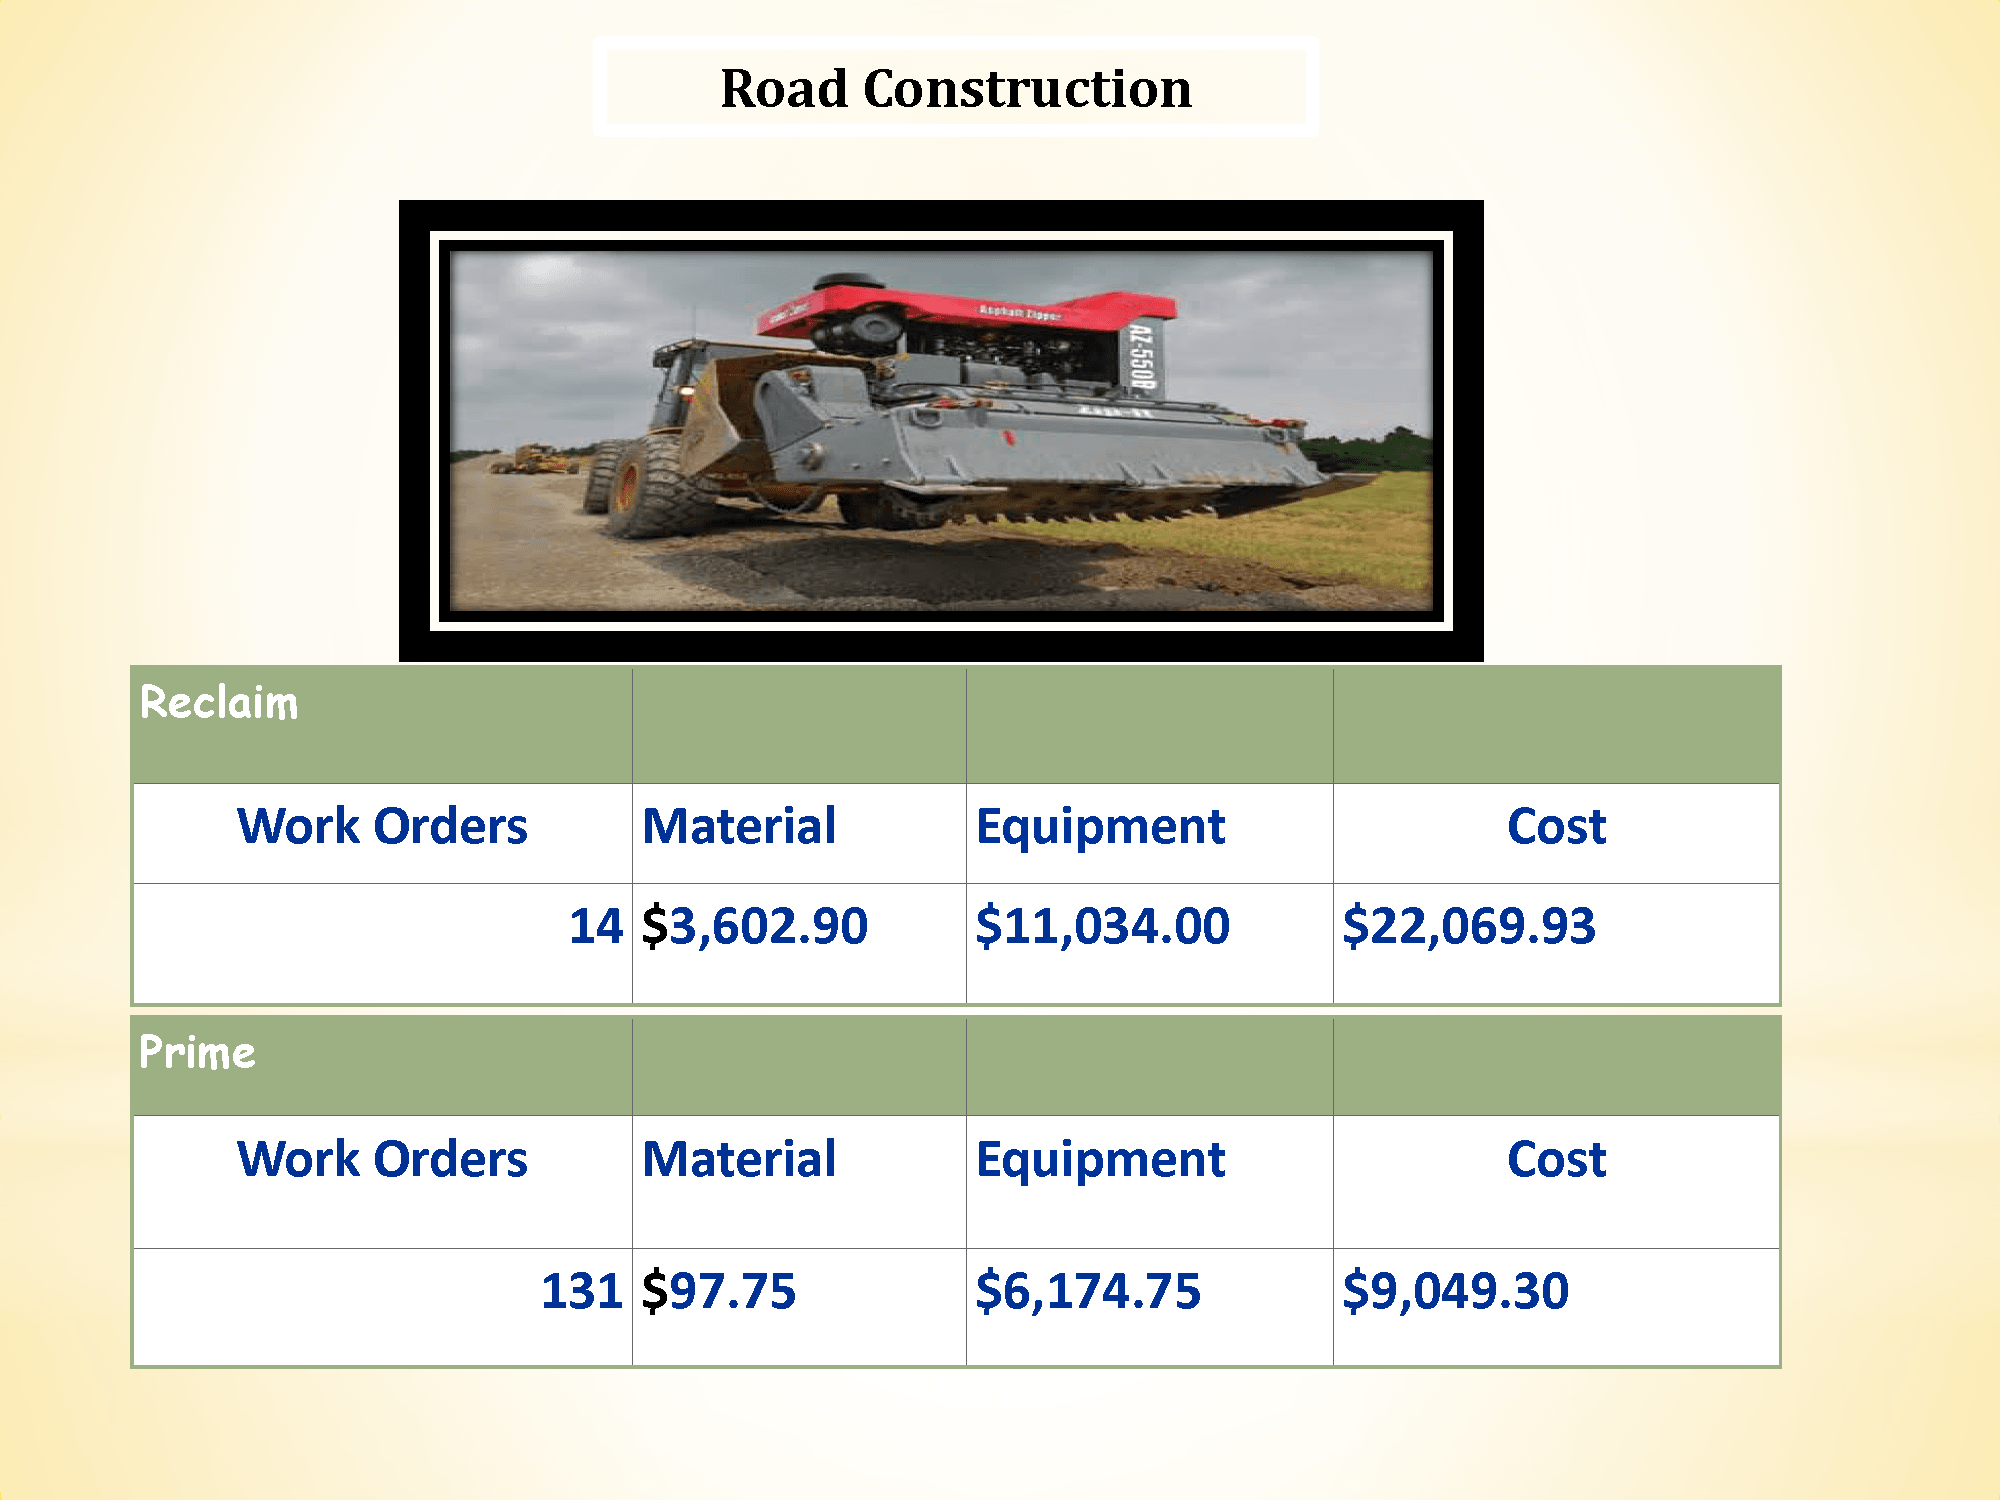 McLennan County Precinct 4 Road & Bridge Road Construction